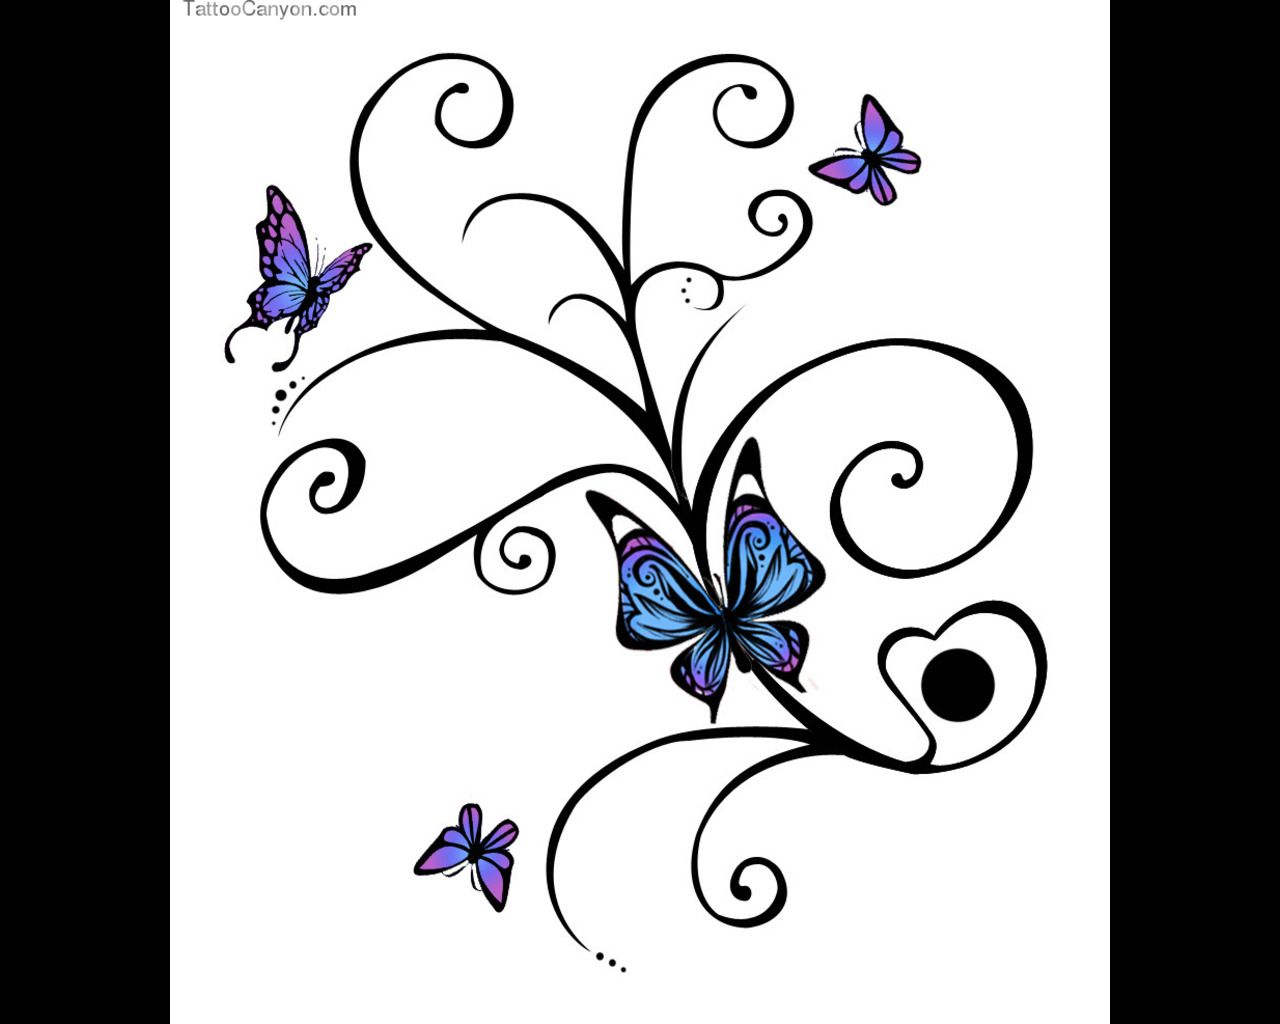 The o jays butterfly tattoos and clothes on pinterest - 60 Awesome Free Butterfly Tattoo Designs The Meaning Of Butterfly Tattoos Designs Include Feminine Tribal And Lower Back Butterfly Tattoos